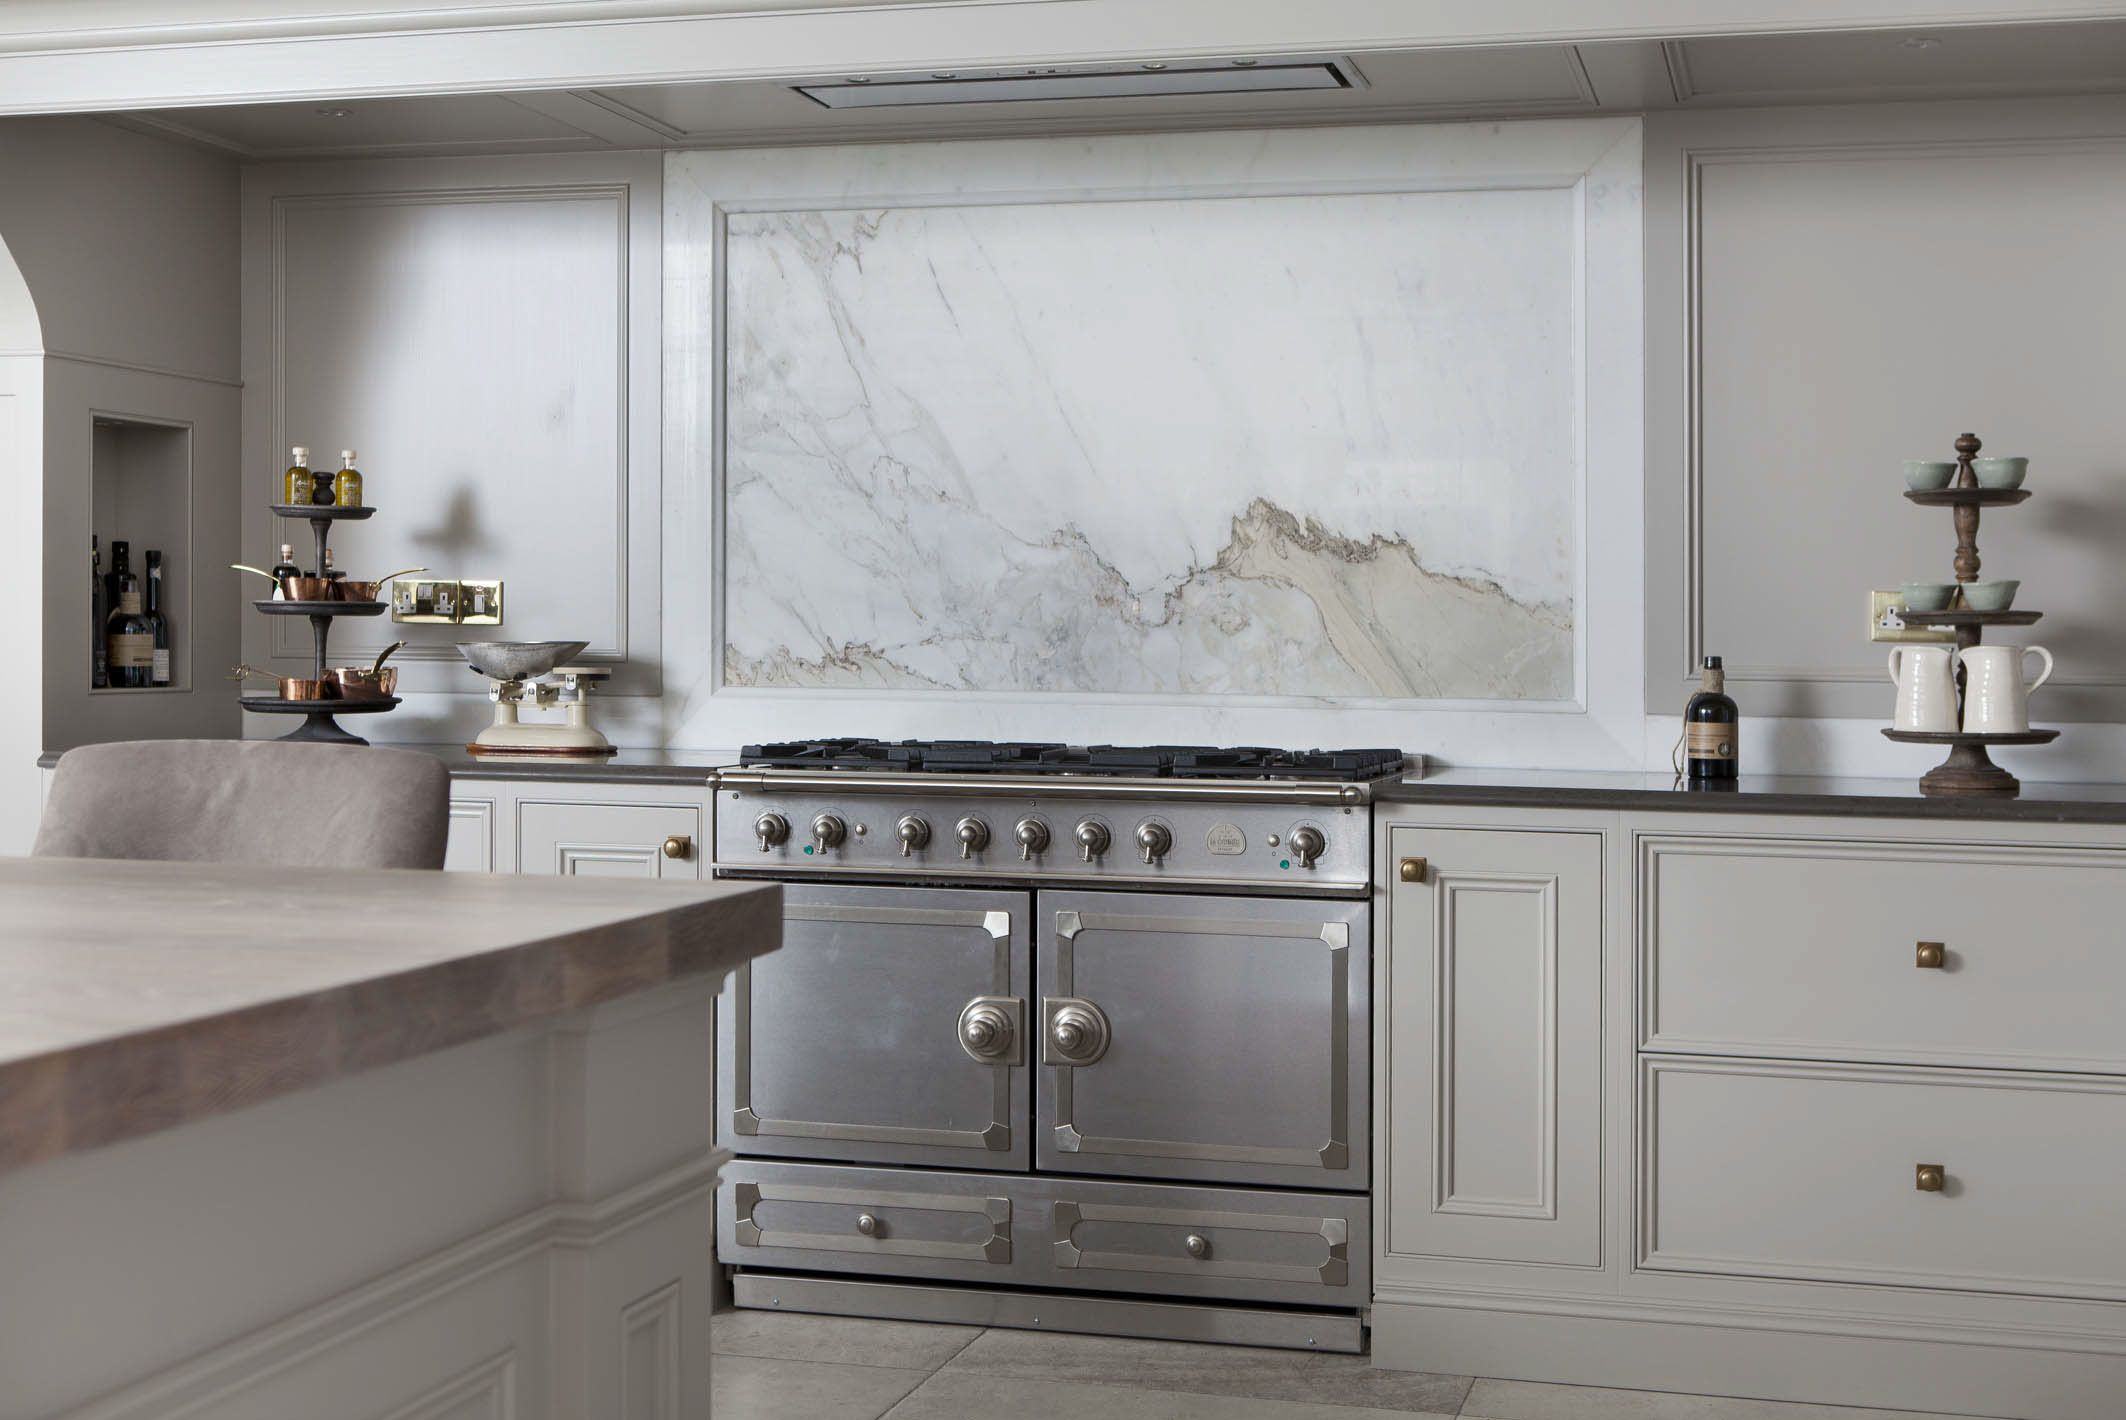 La cornue range cooker Kitchen marble, Kitchen design